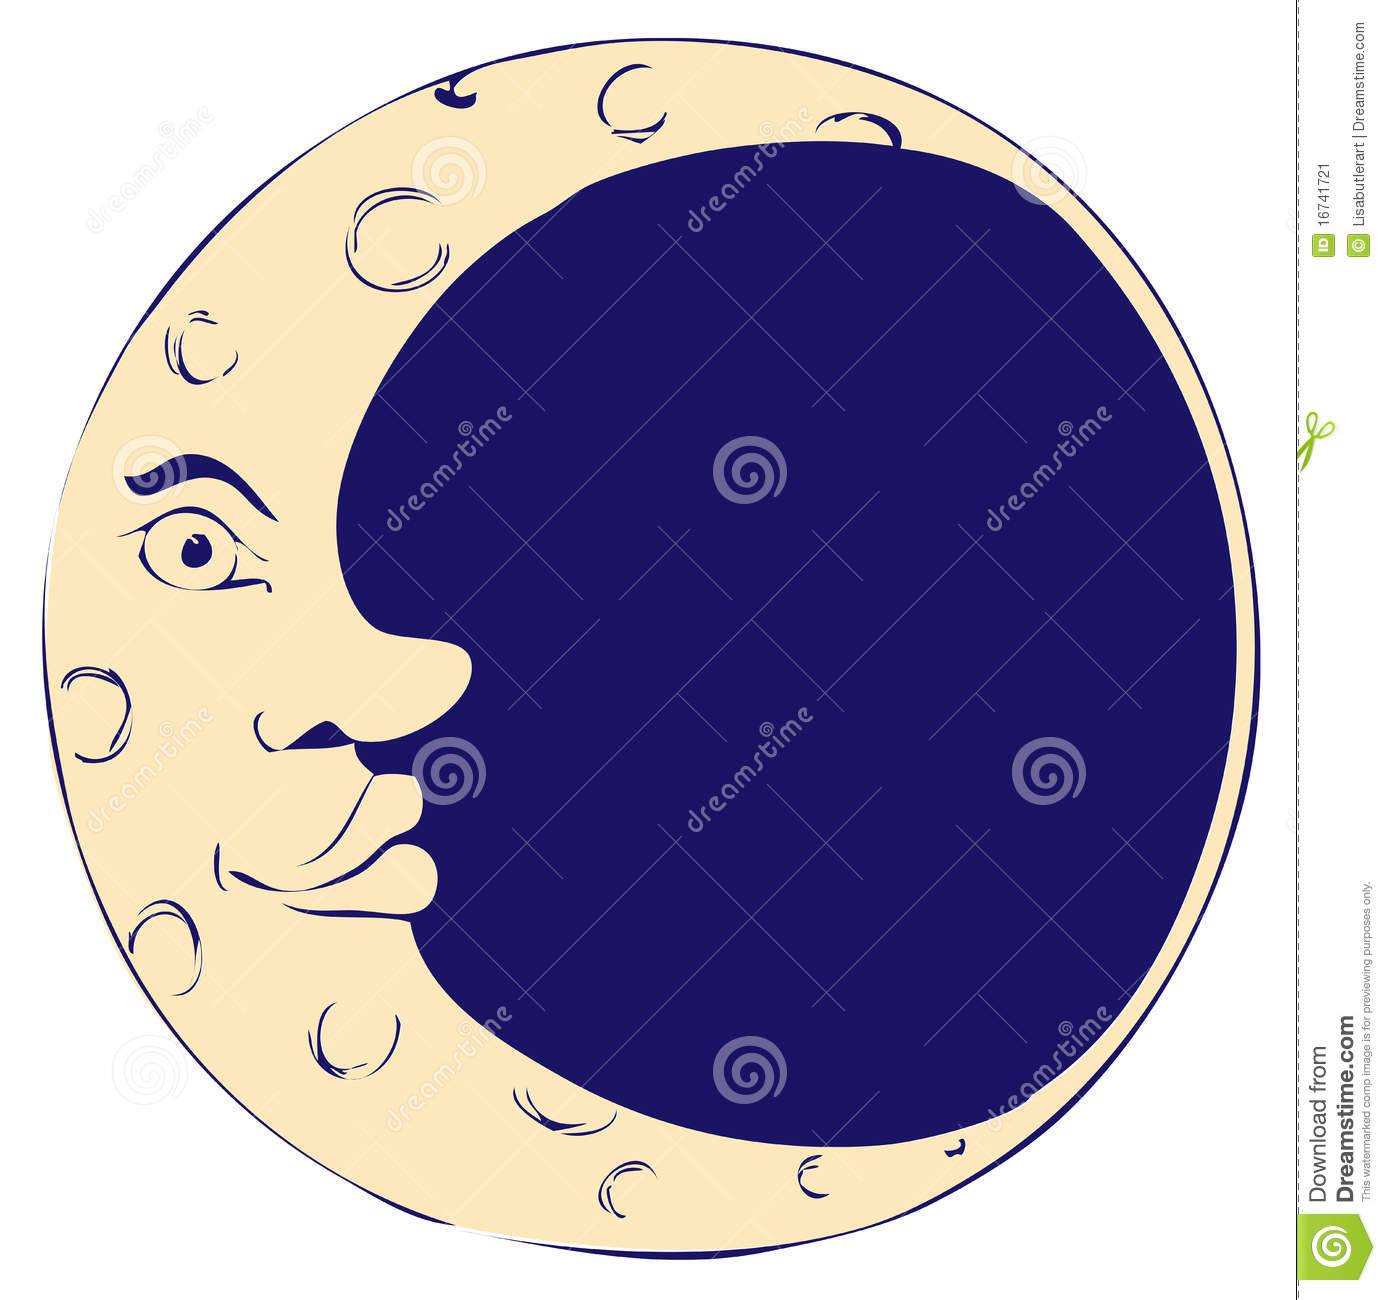 Man In The Moon Art | Clipart Panda - Free Clipart Images